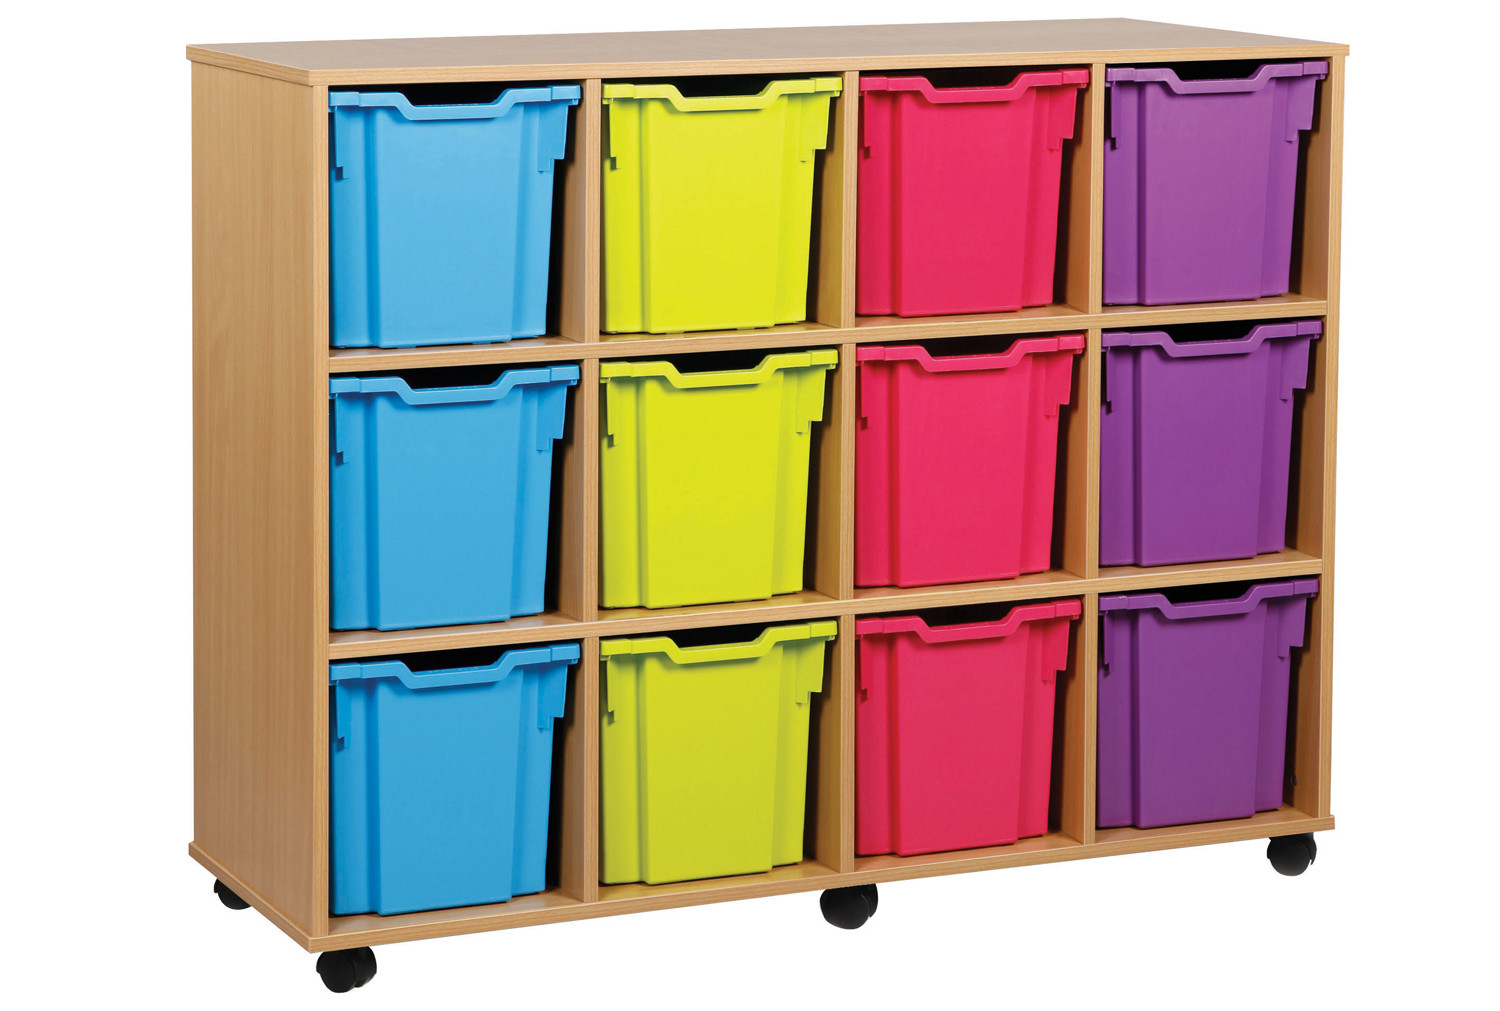 12 Jumbo Tray Storage Unit. Find Loads More Colours, Materials & Styles Online - Buy Office Furniture Online